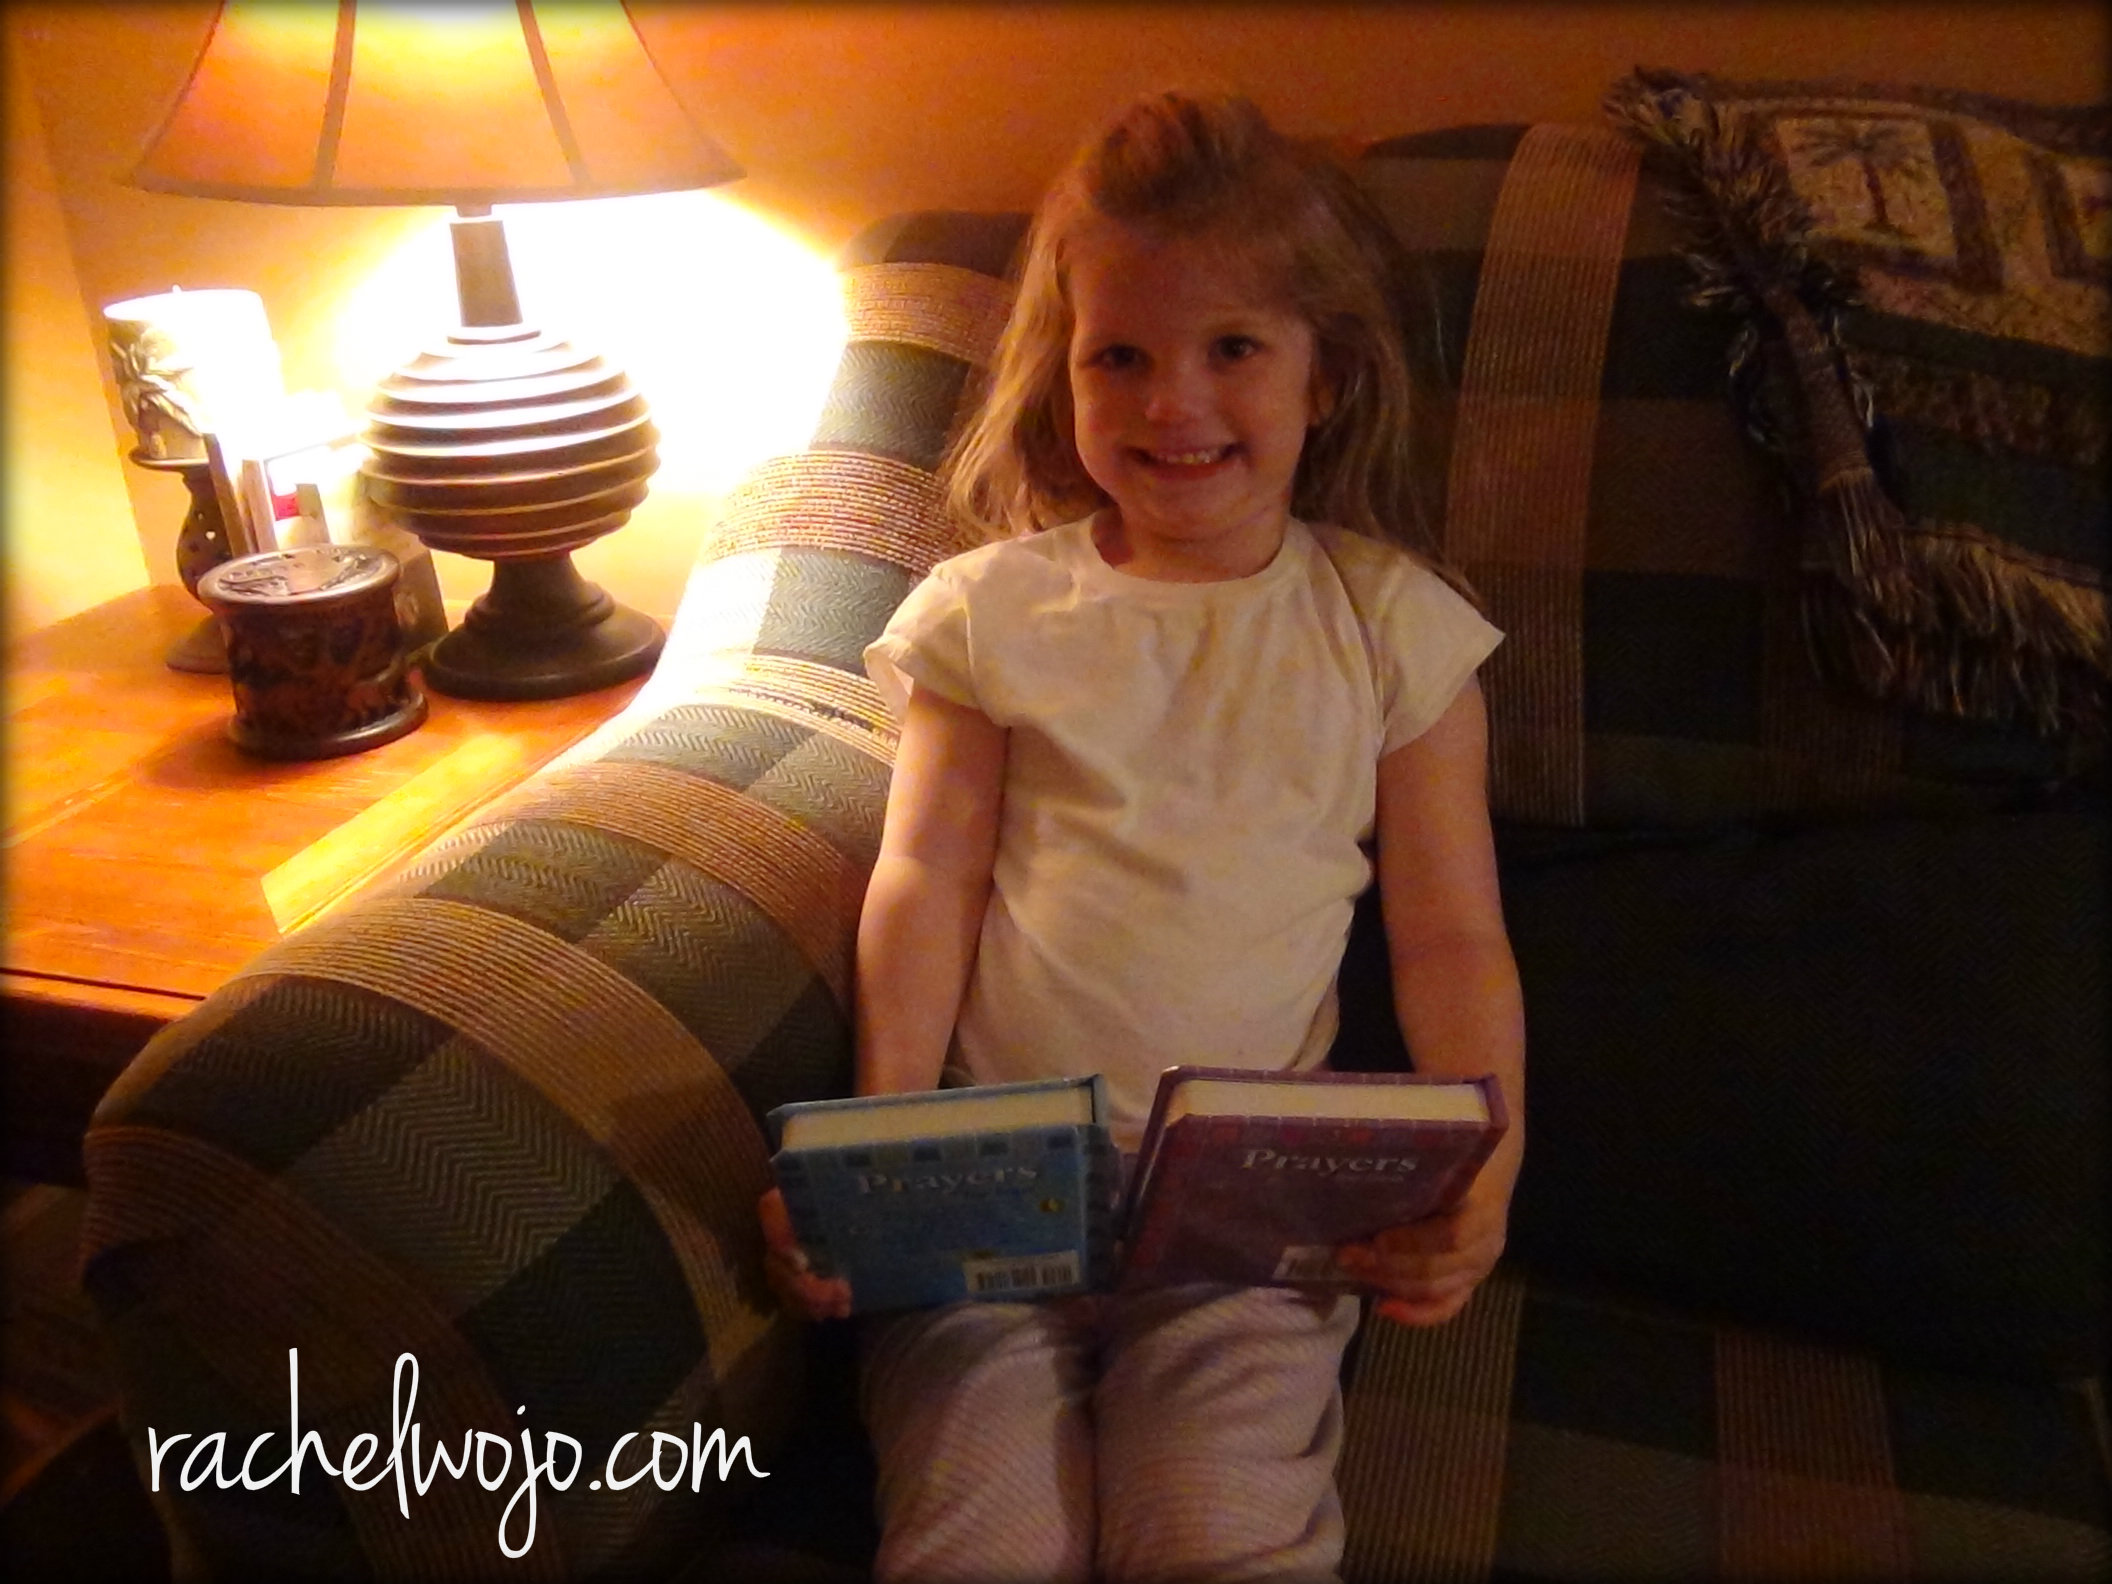 Prayer Books for Children Review &Giveaway